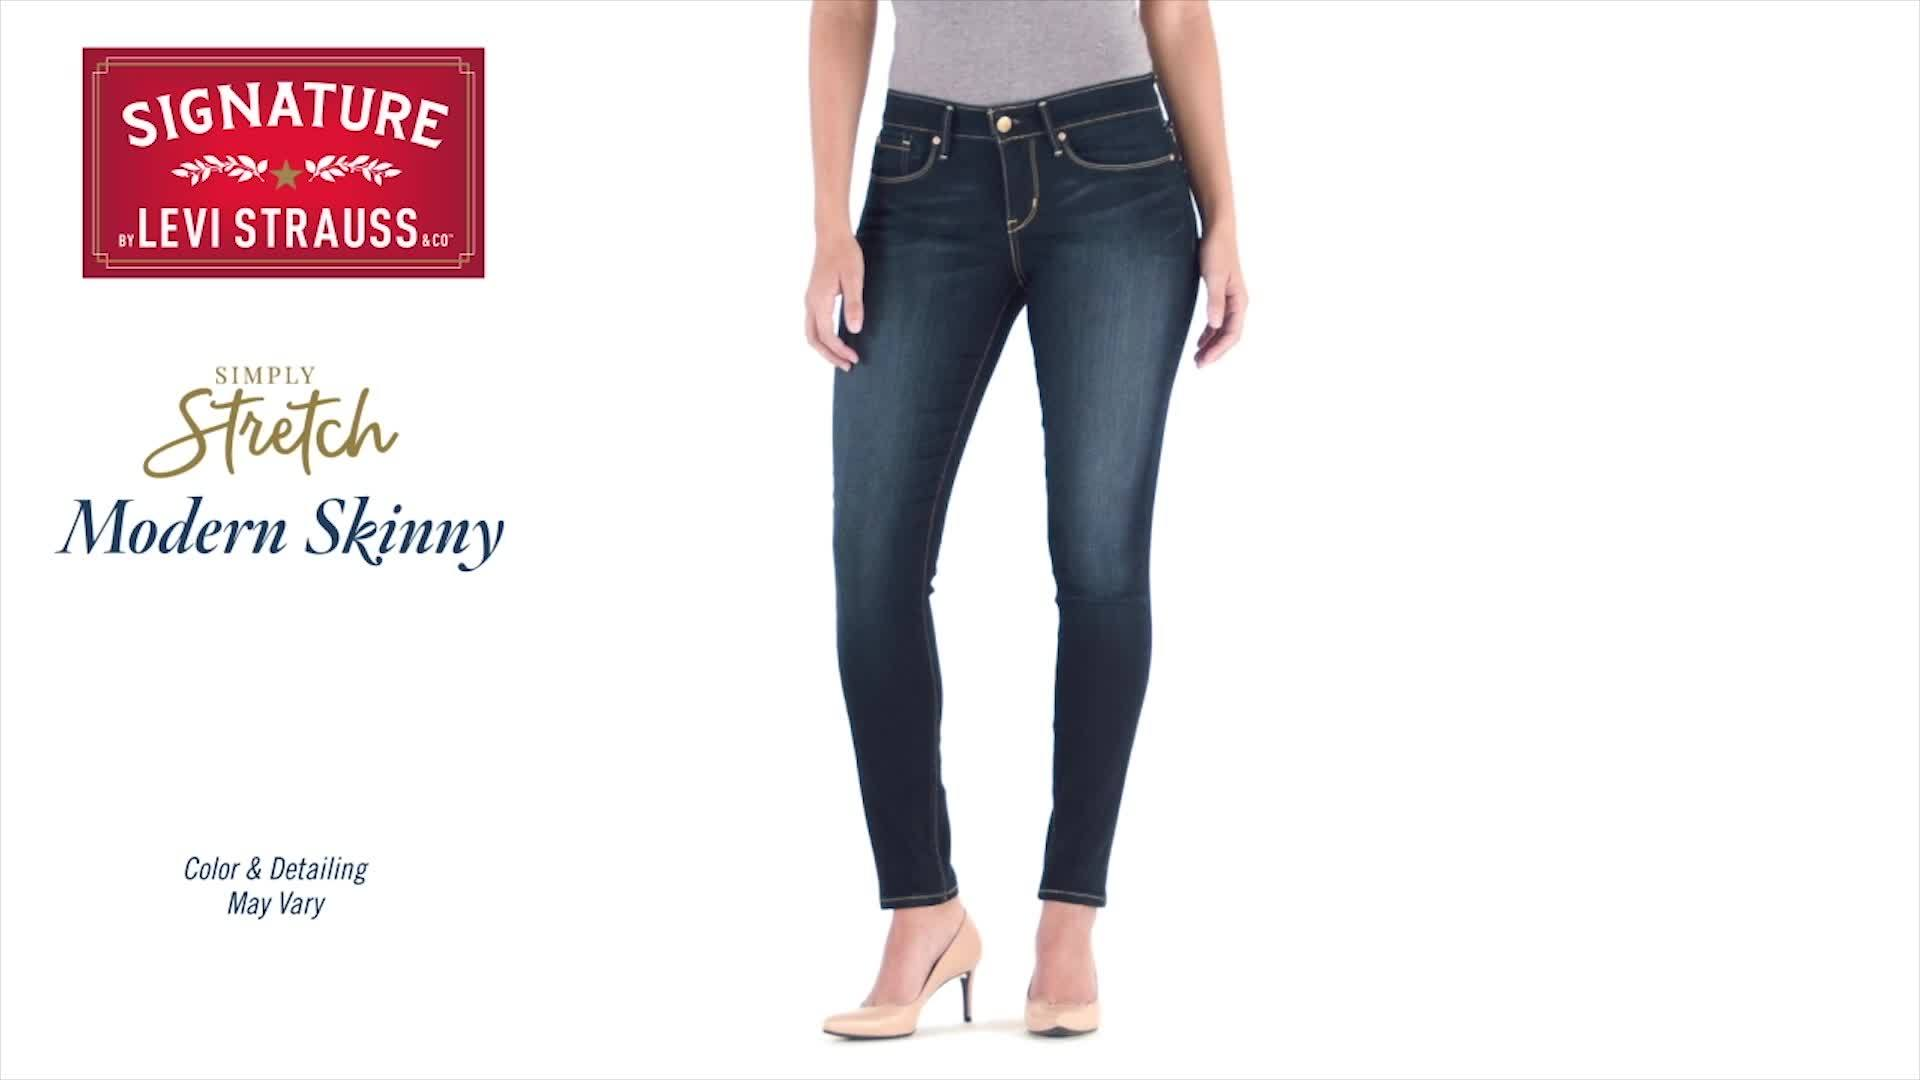 dc11eb4e1609 Signature by Levi Strauss & Co. - Signature by Levi Strauss & Co. Women's  Modern Skinny Jeans - Walmart.com